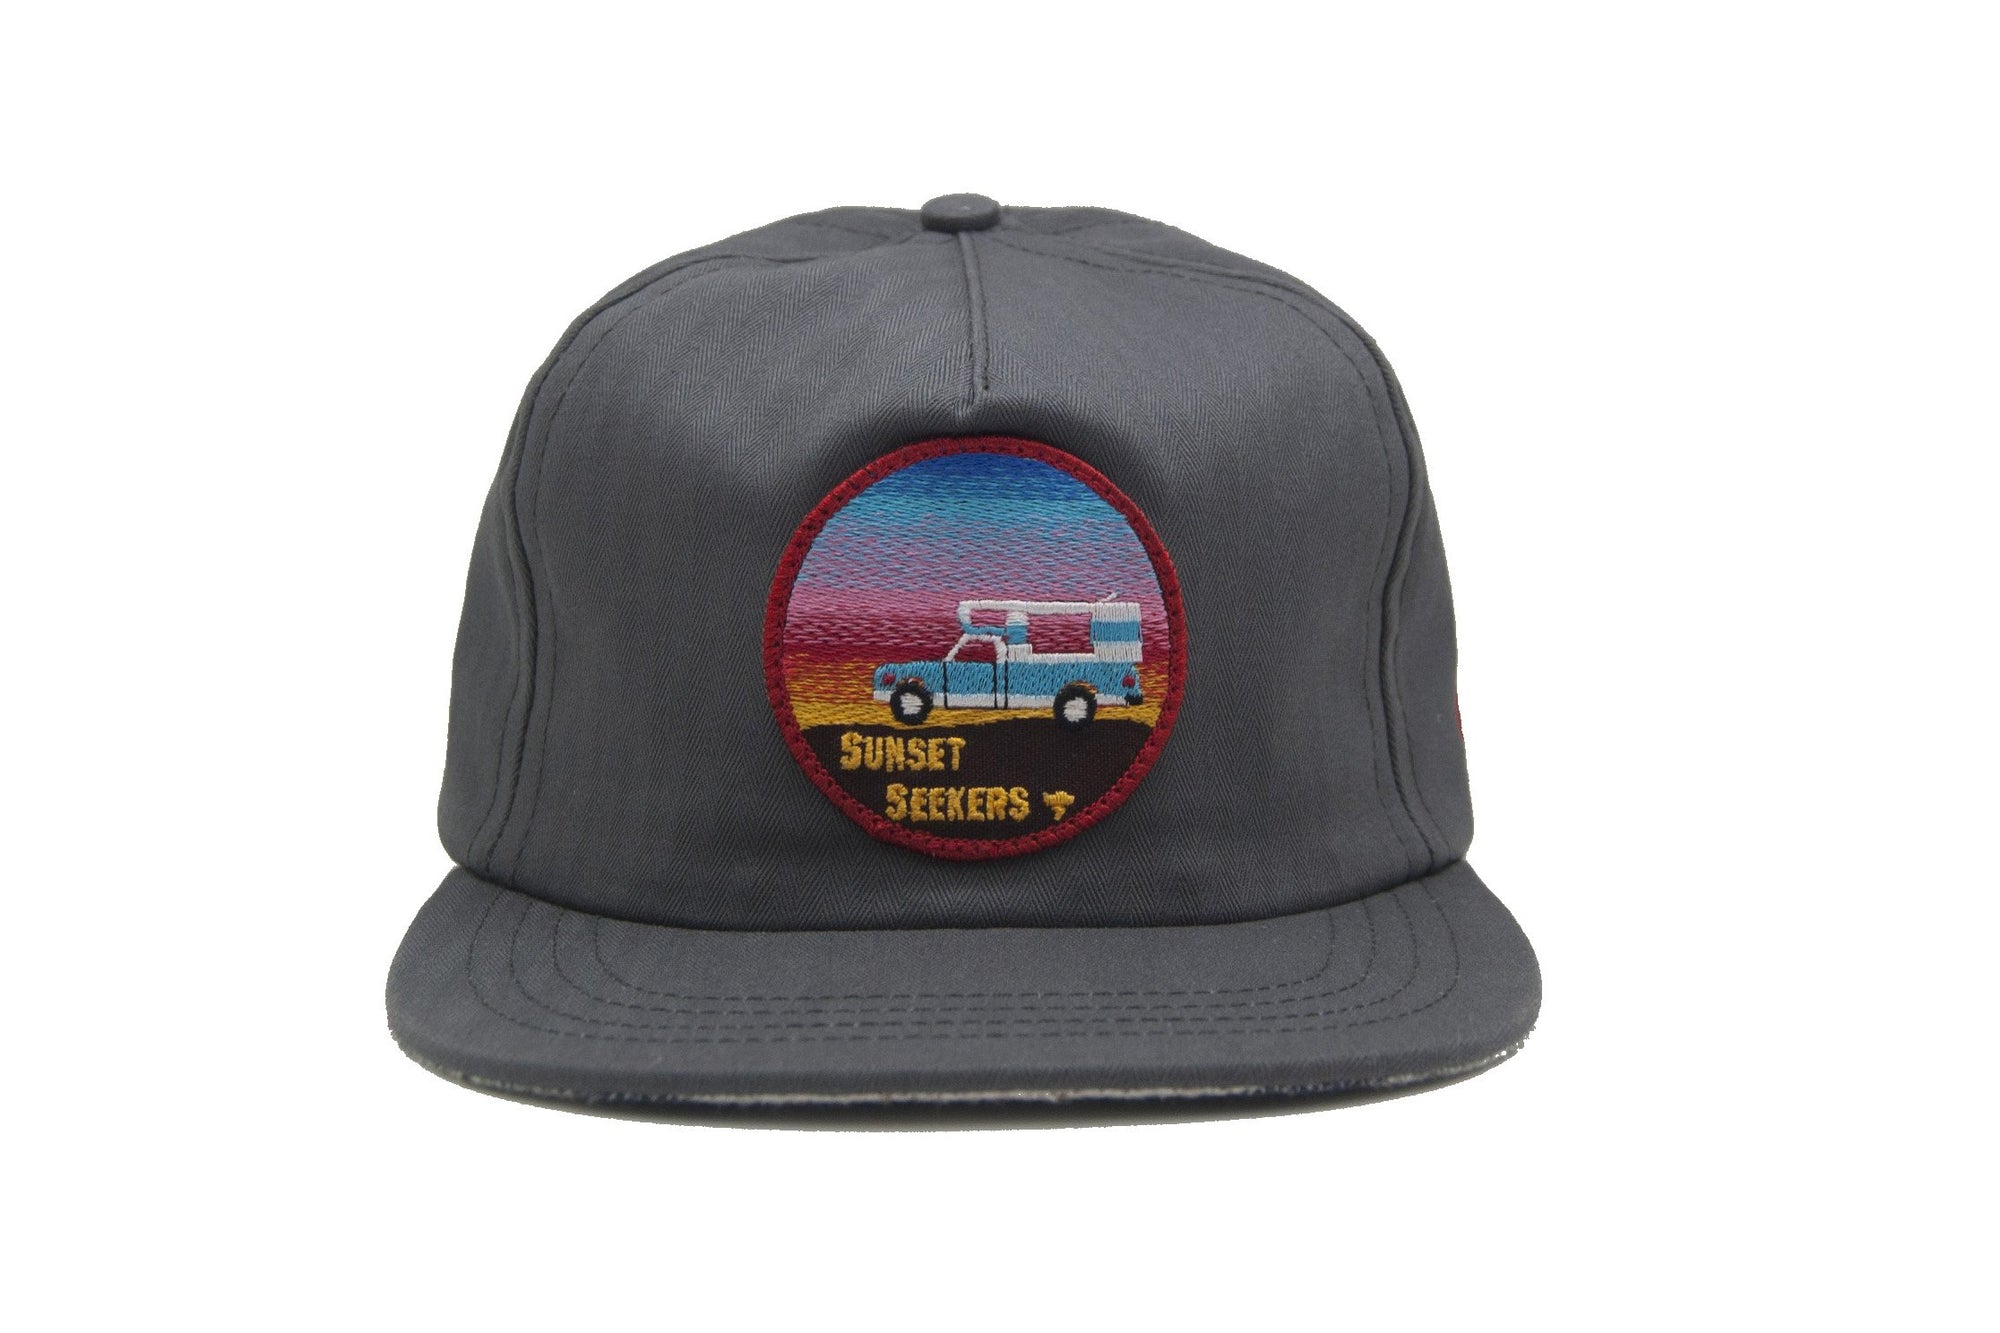 Sunset Seekers Strapback